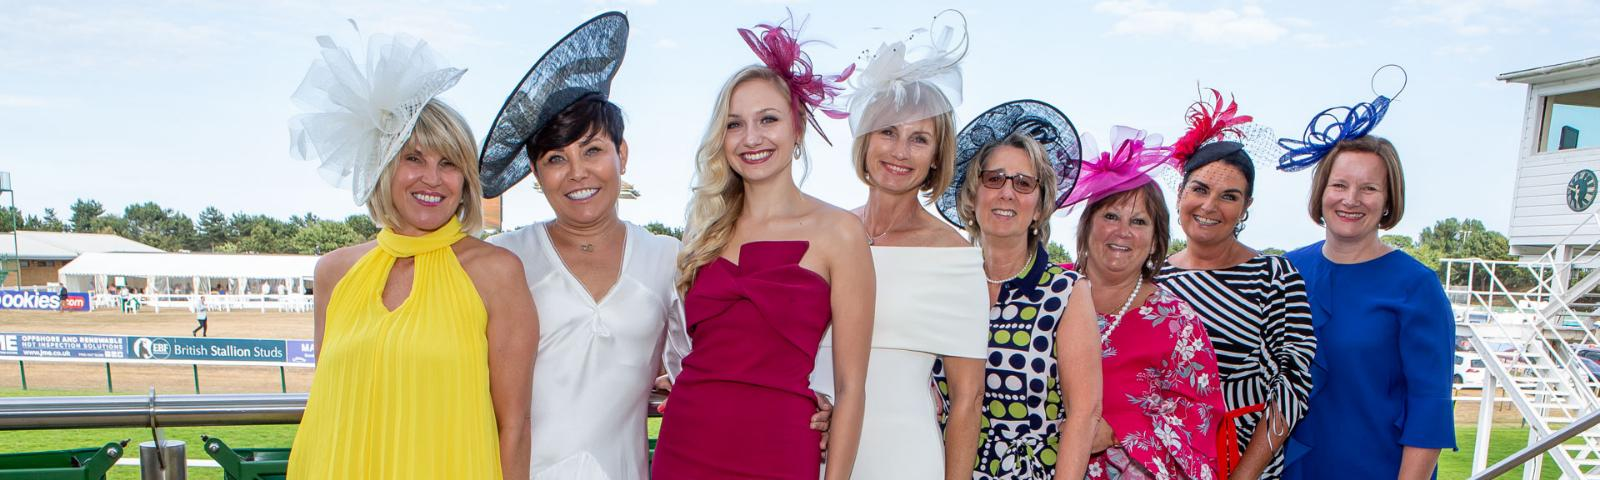 A group of well dressed Ladies pose for the camera on Ladies Day at Great Yarmouth Racecourse.